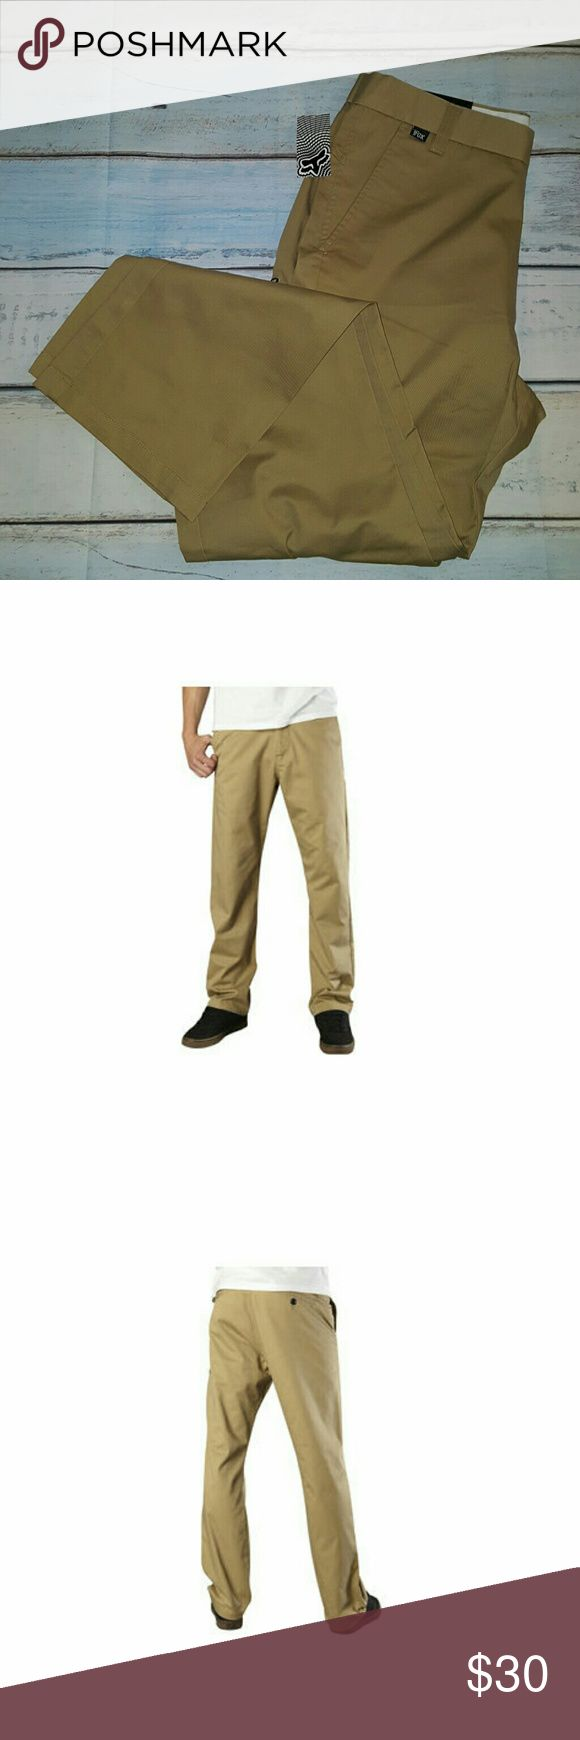 Fox Racing Essex Pants Dark Khaki 32x32 Fox Essex Pants Sport a Clean Look, a Tough-As-Nails Construction and Basic Colorways, Making Them the Perfect Go-To Pants for Your Everyday Needs. Features      Sits low on the waist with a relaxed fit through the top and thigh     Straight leg styling     Five pockets with logo button waist and zip fly     Fox head embroidery on back     60% polyester/40% twill Fox Pants